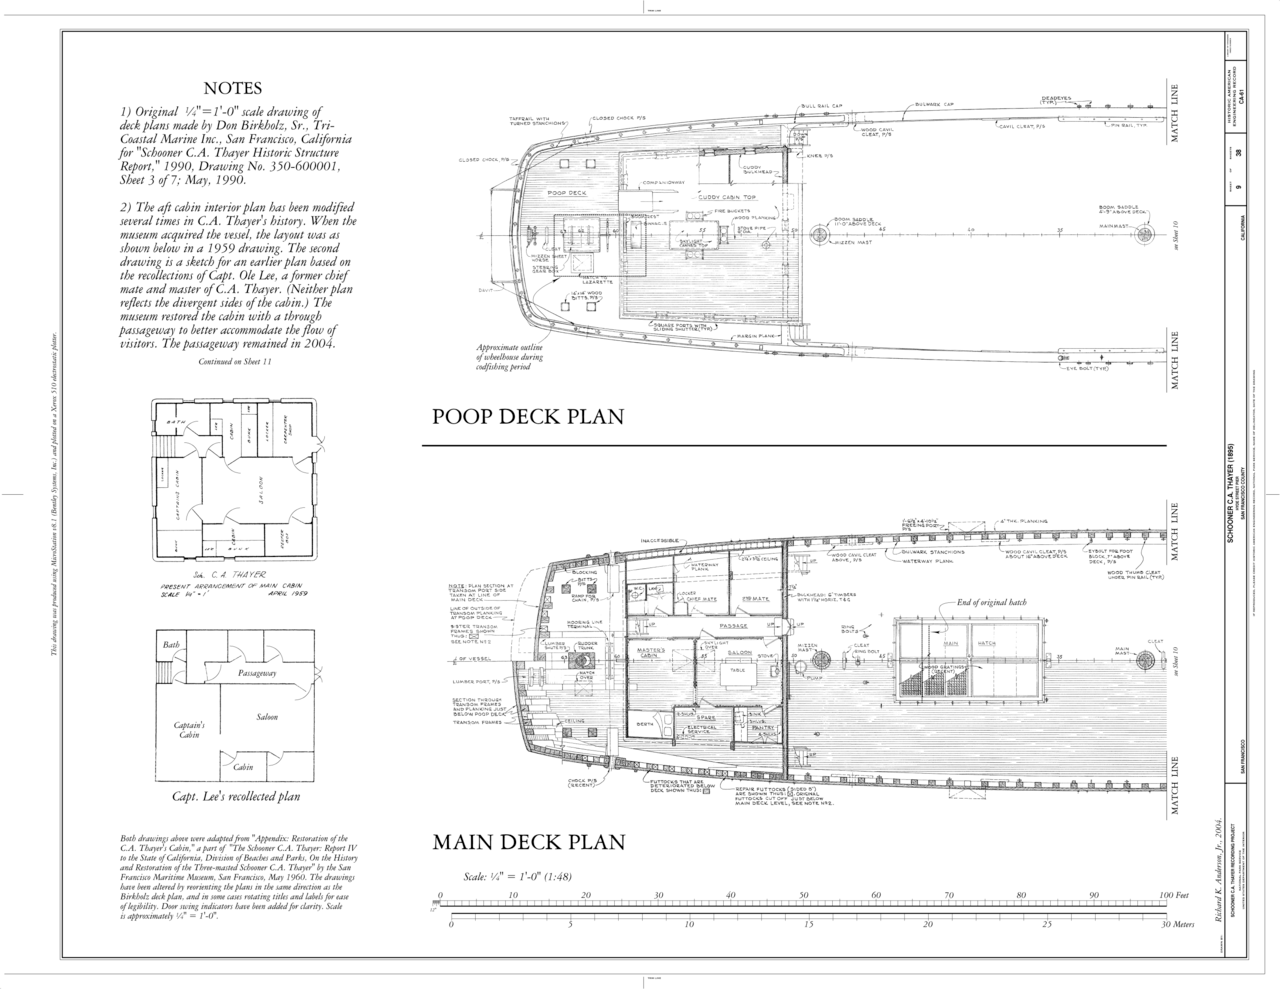 hight resolution of file poop deck plan main deck plan schooner c a thayer hyde street pier san francisco san francisco county ca haer cal 38 sanfra 199 sheet 9 of